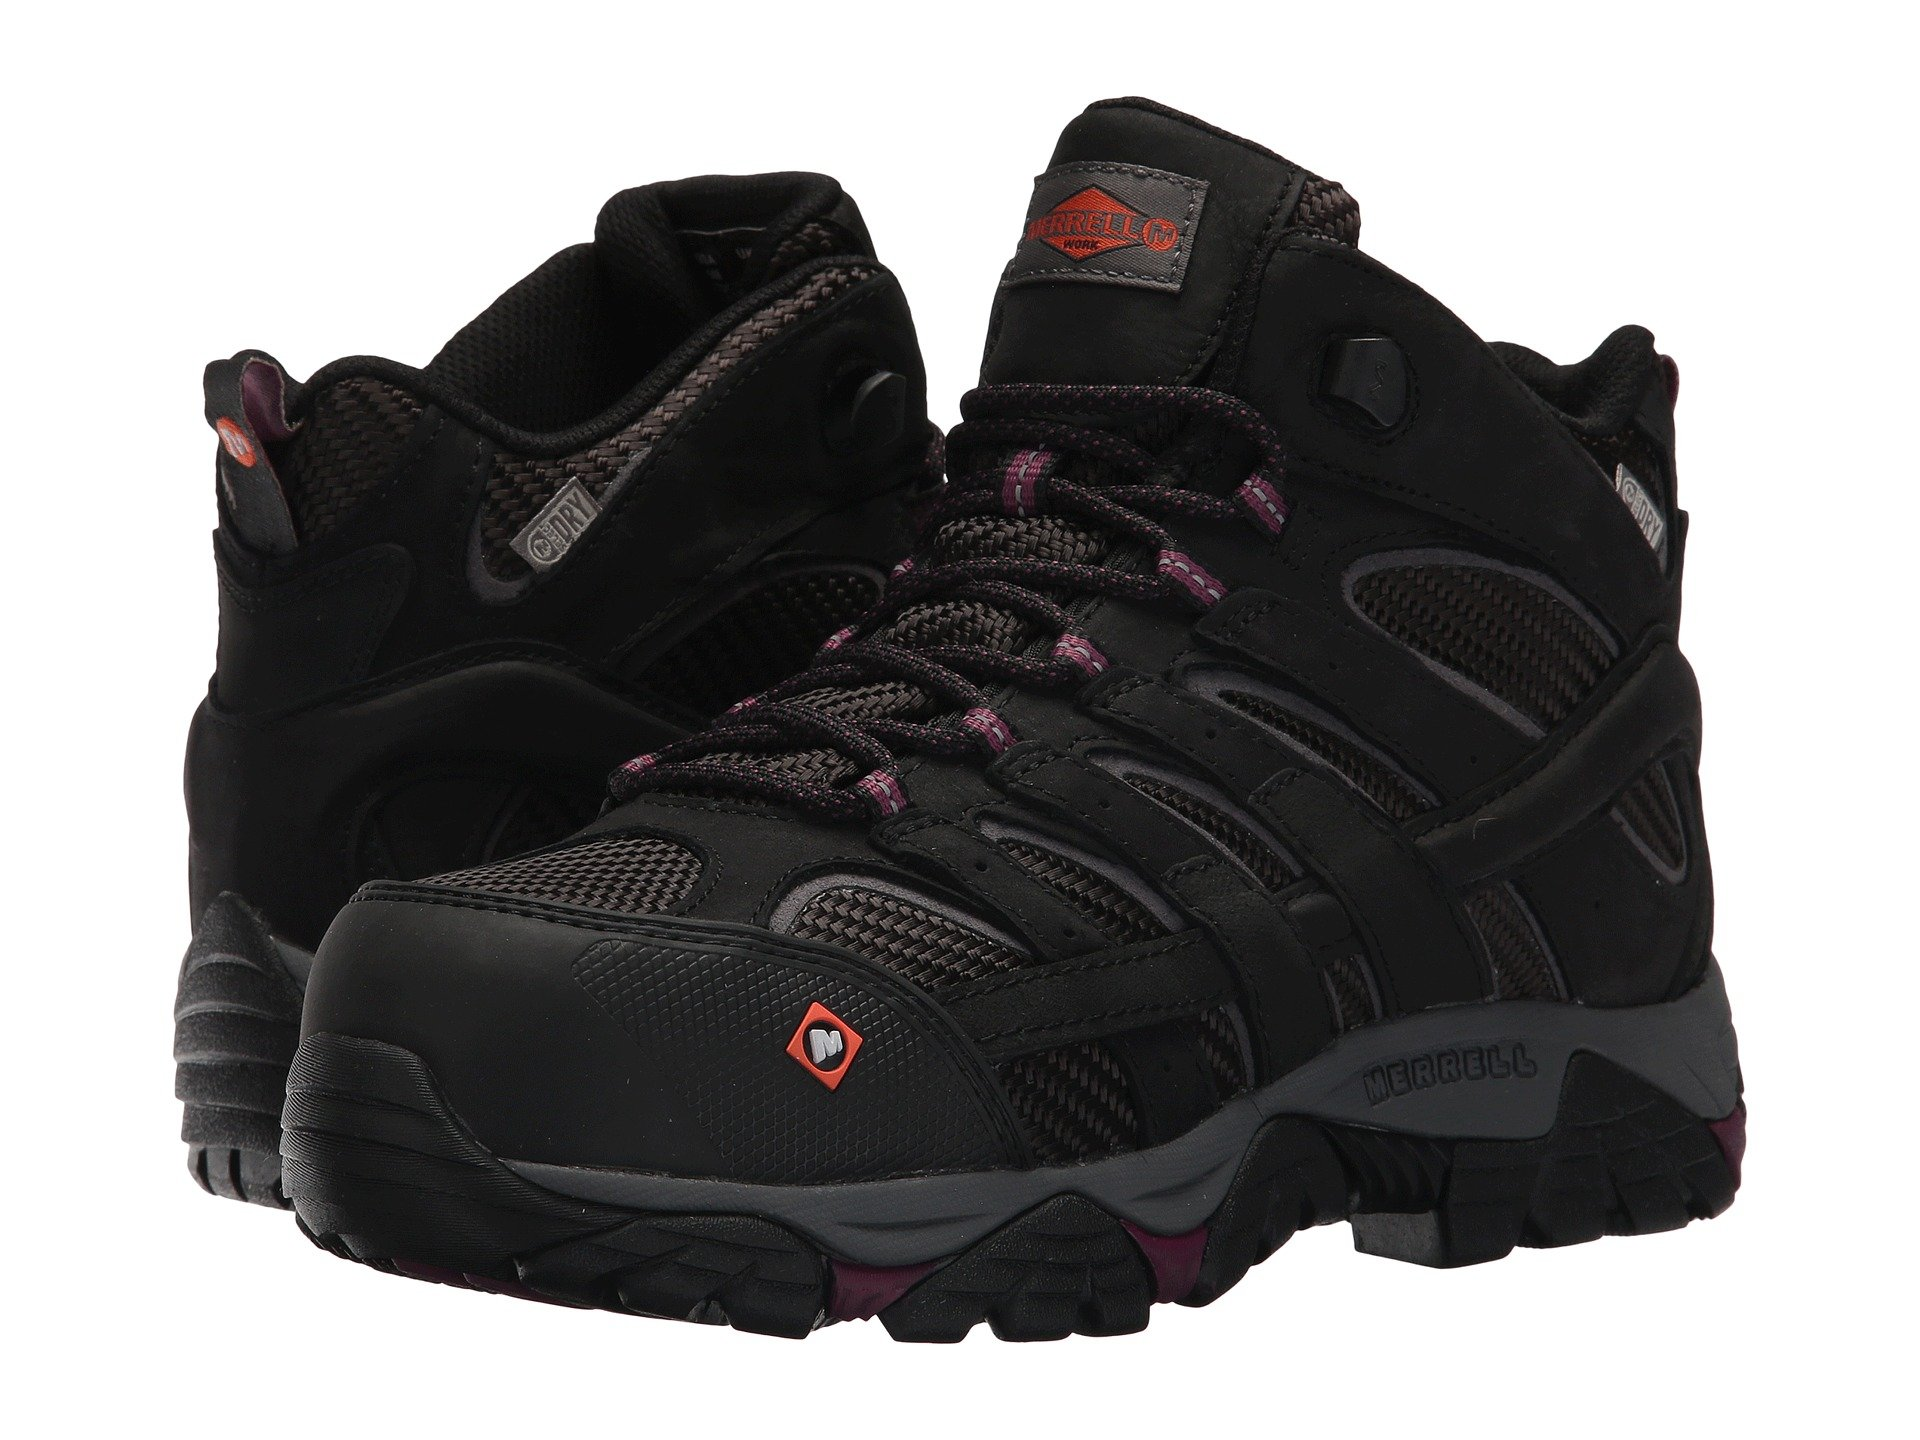 5527efa3 Women's Merrell Work Work and Safety Boots + FREE SHIPPING | Shoes